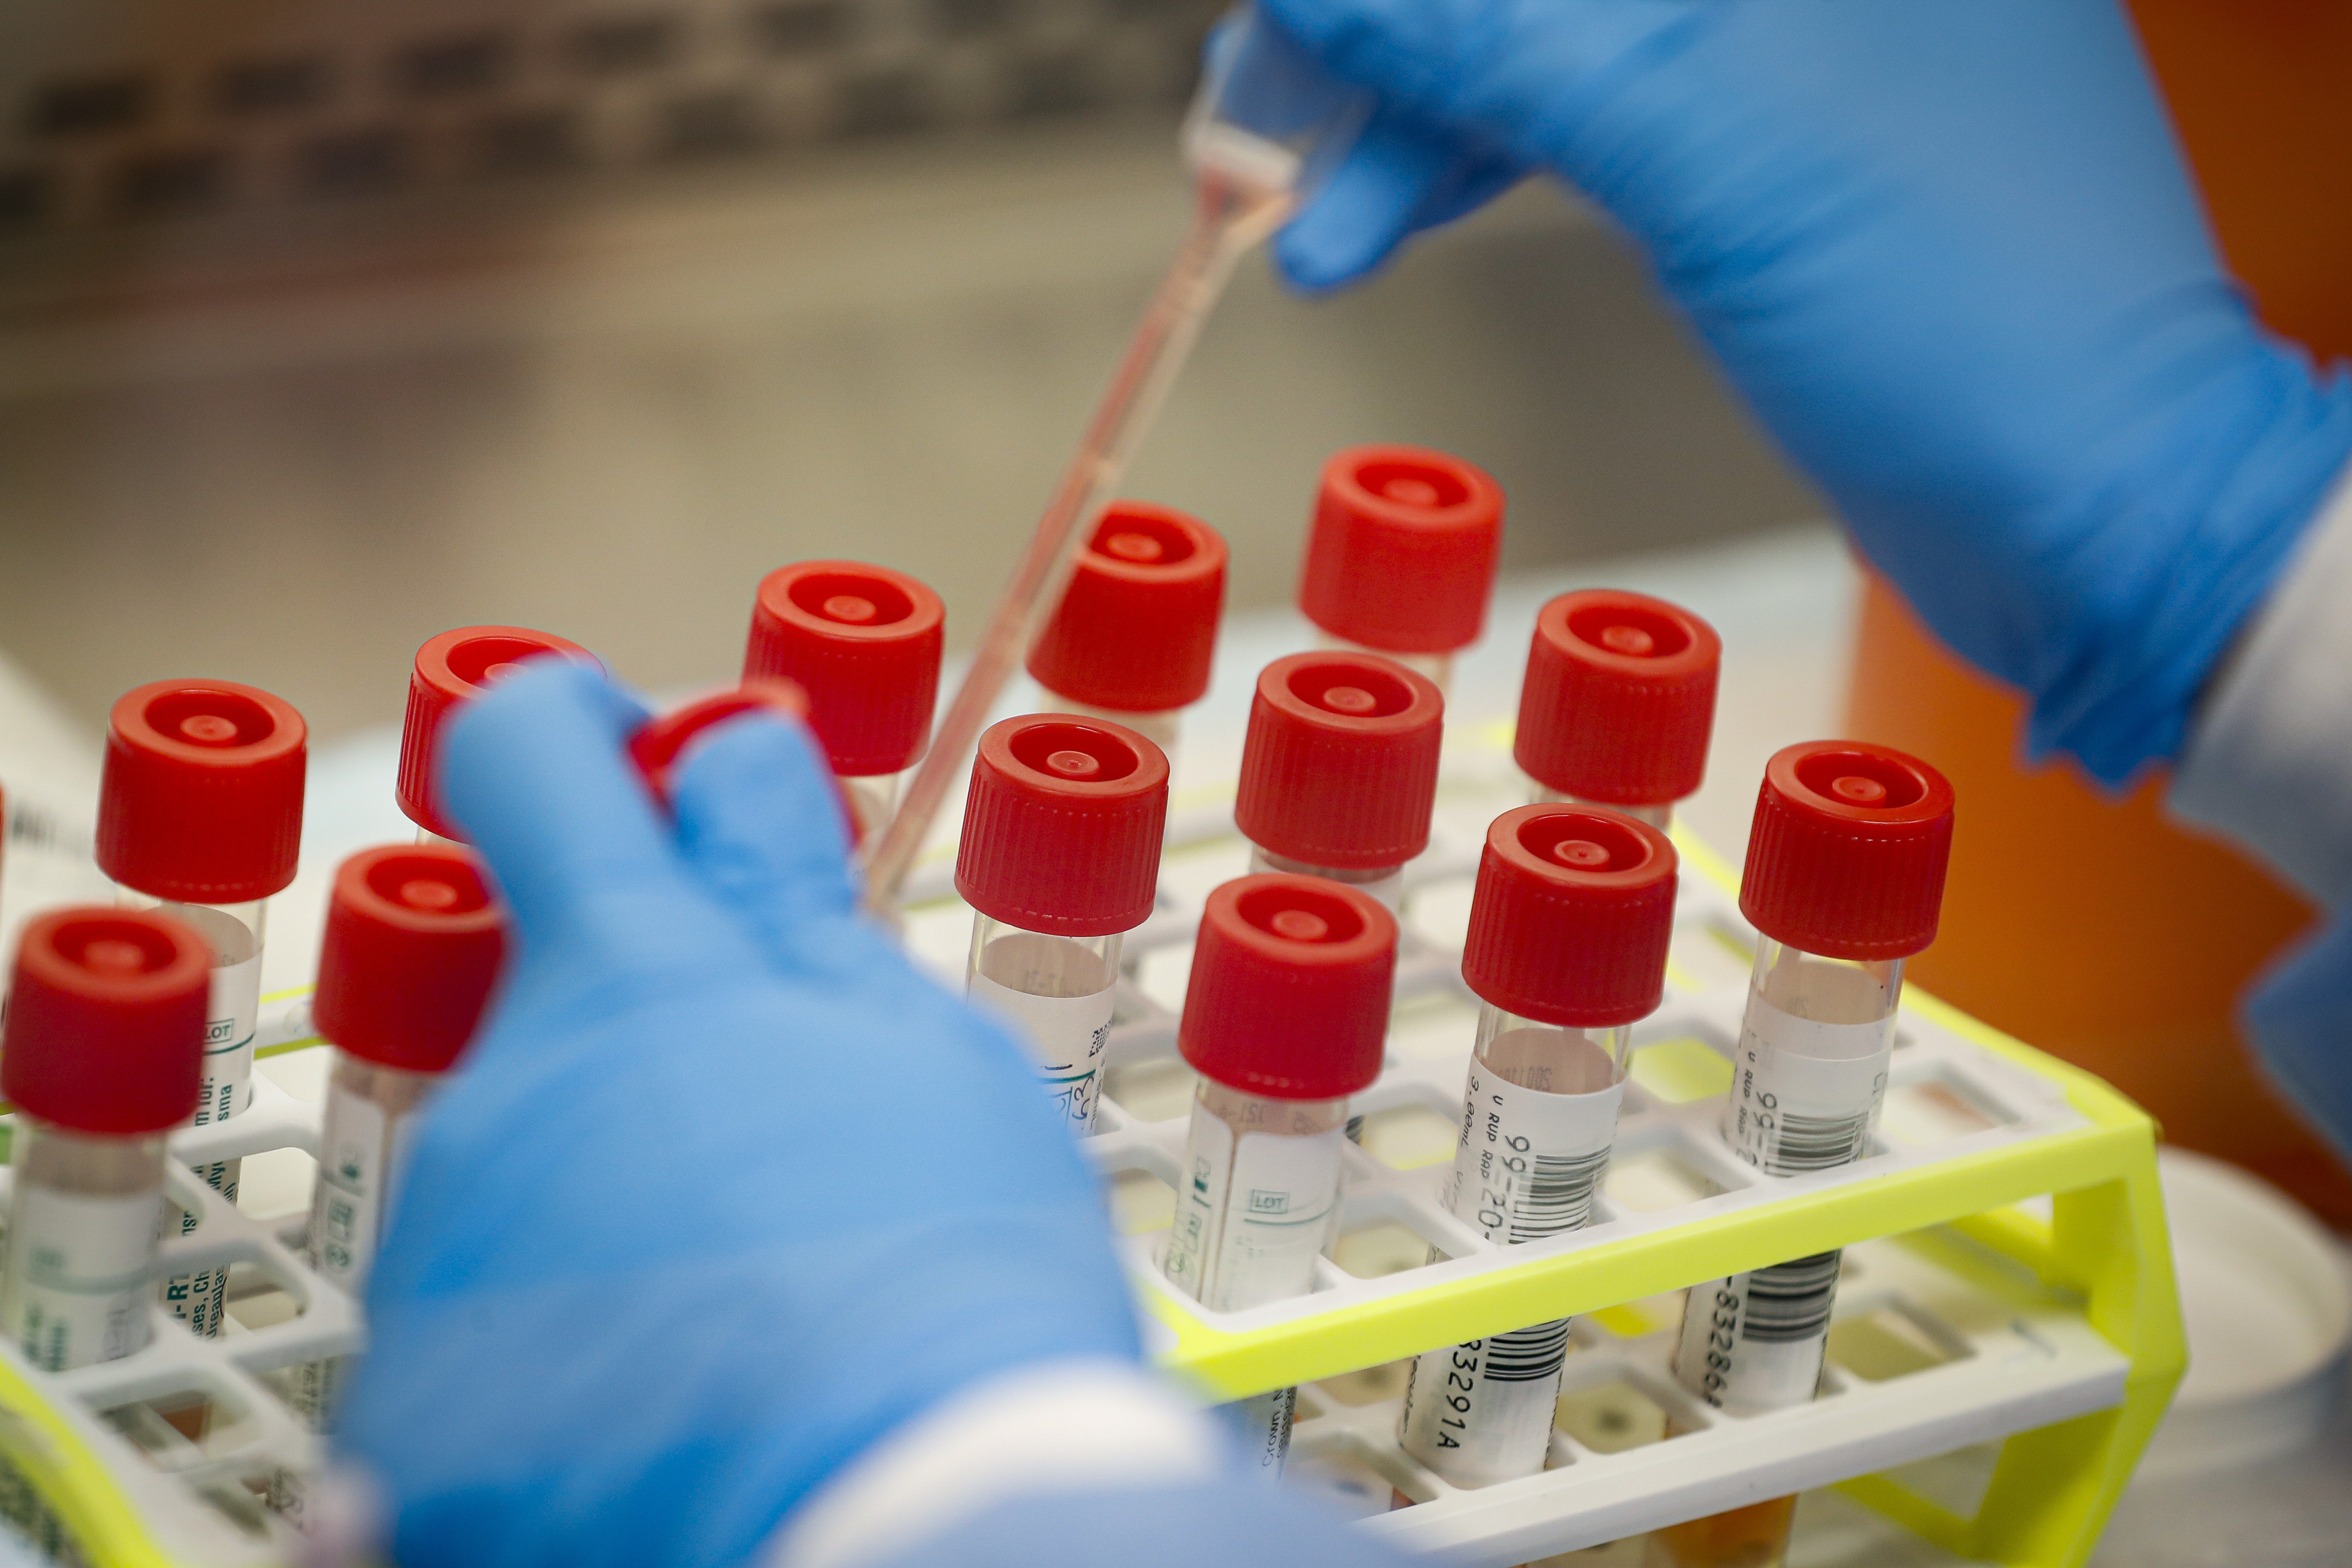 Australian COVID-19 vaccine shows promising  results